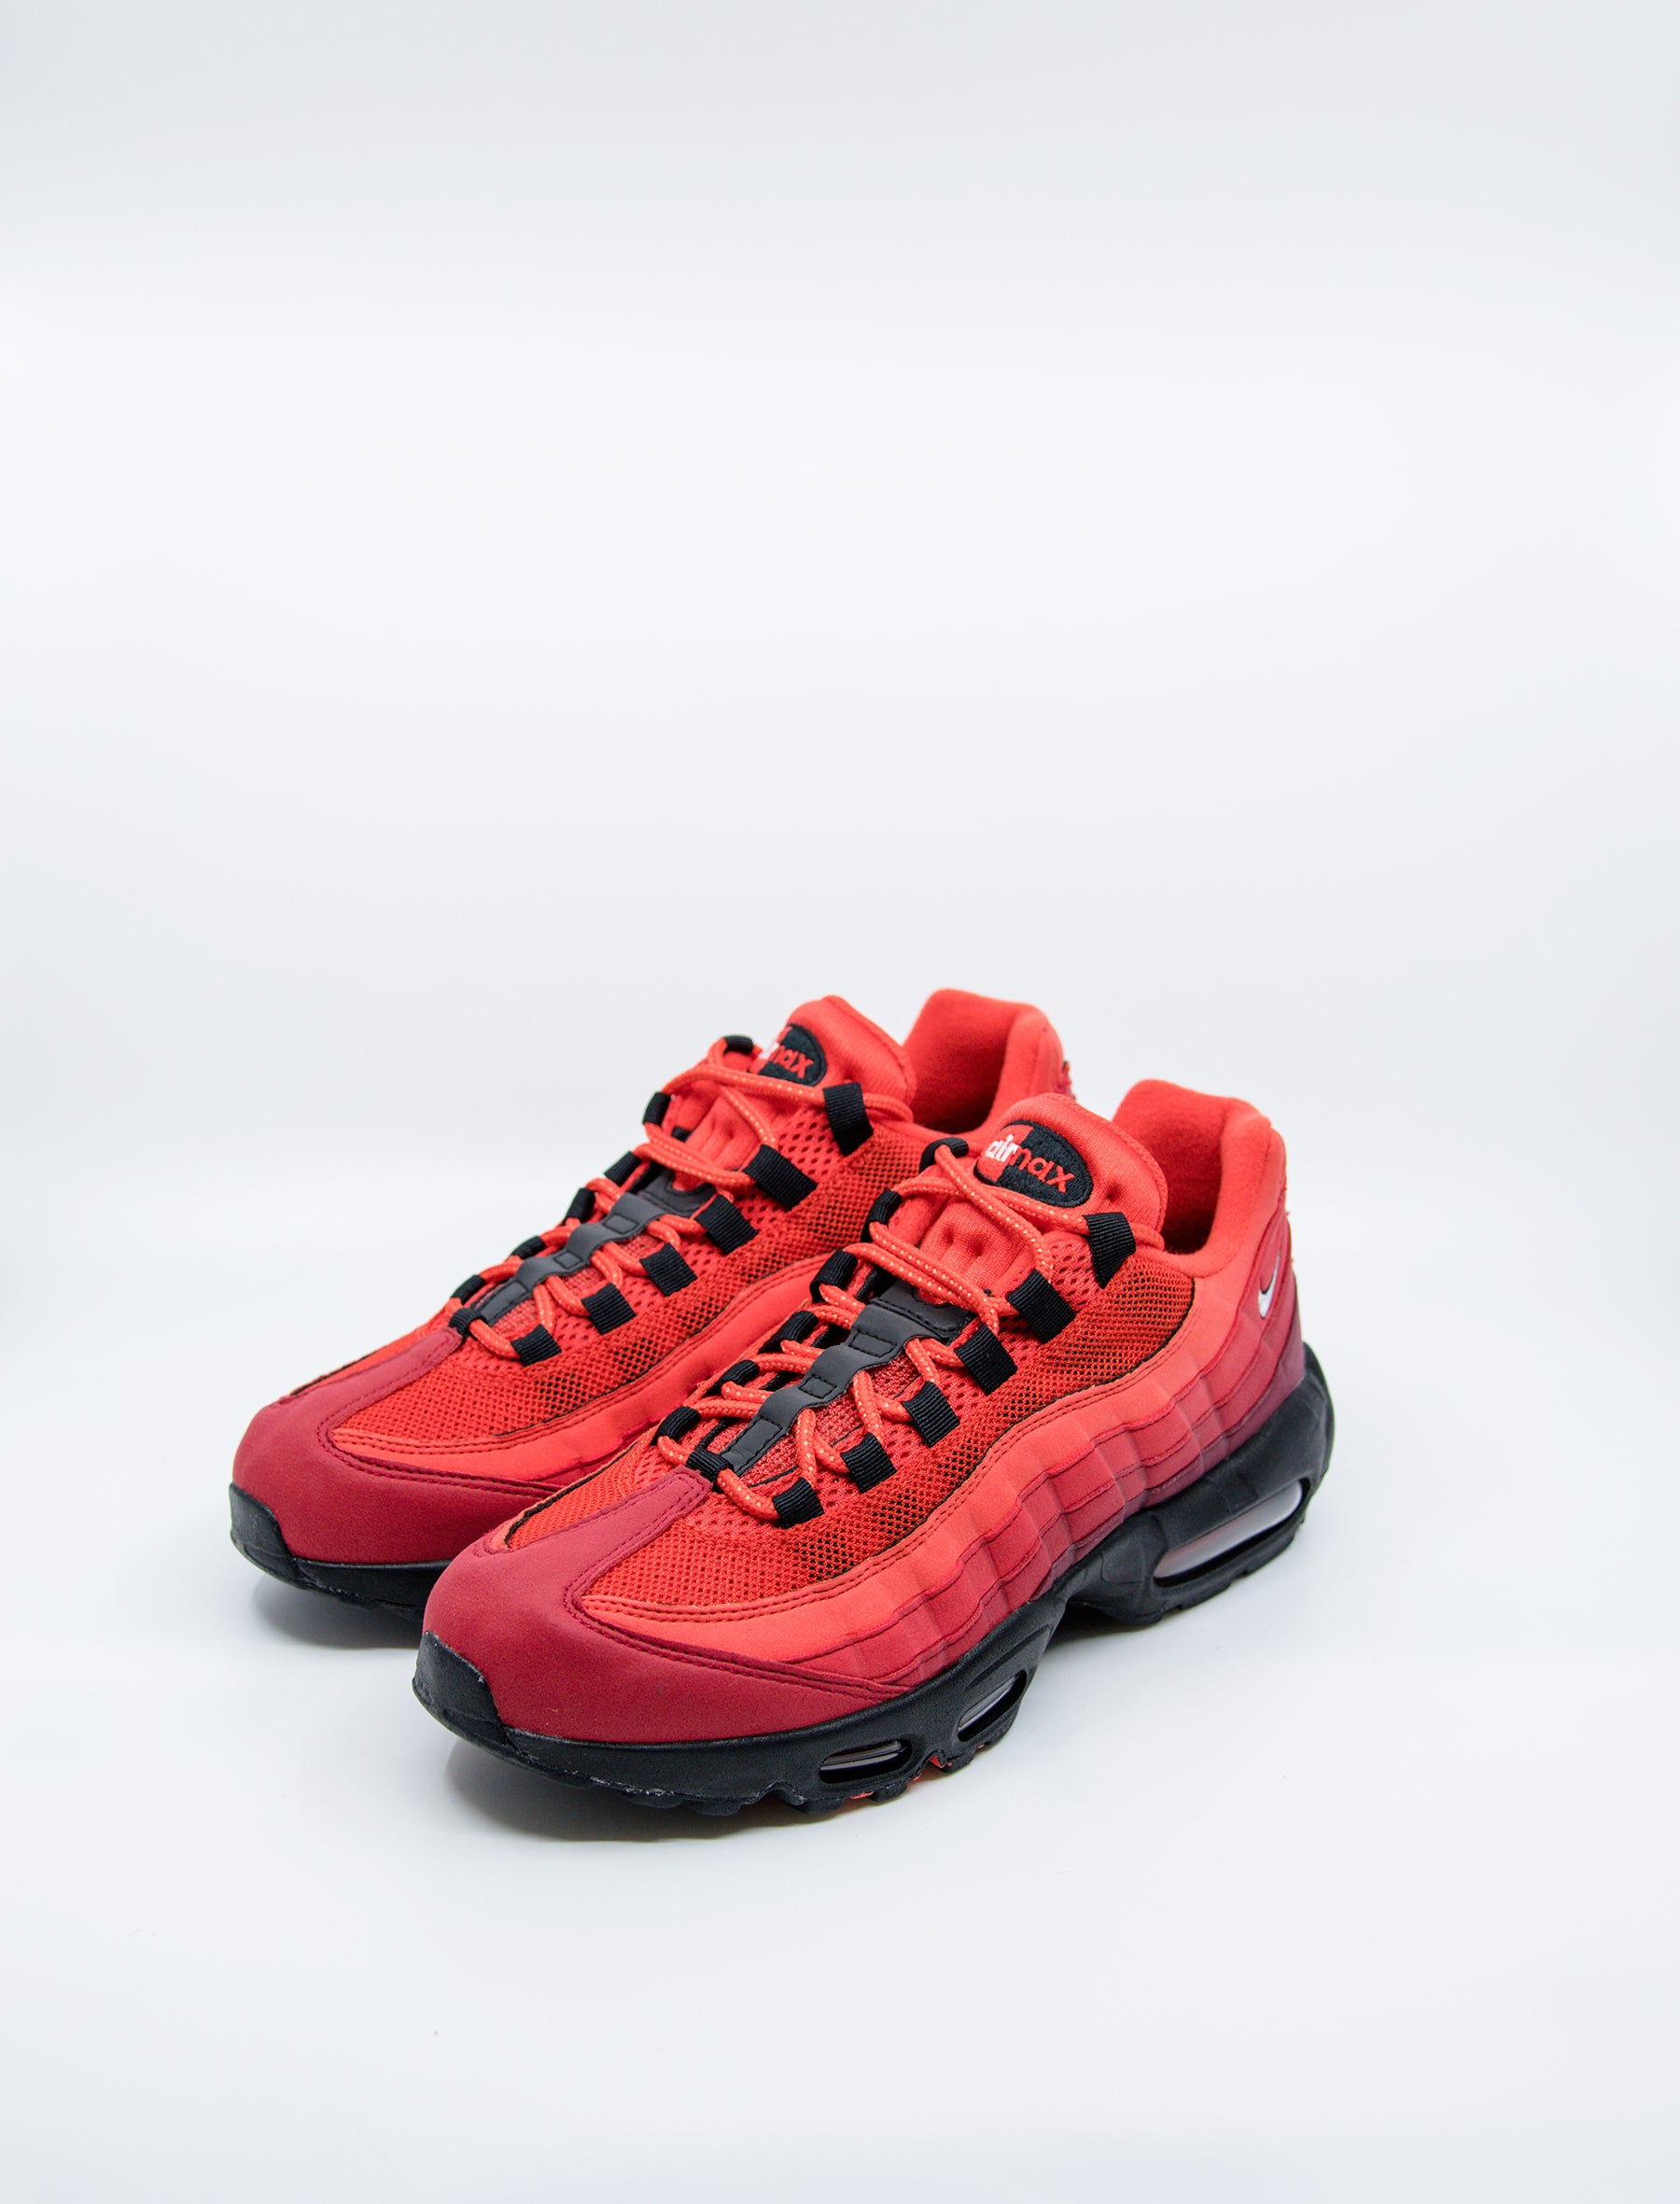 reputable site c1e7a 0a41c nike mens air max 95 og at2865 600  nike air max 95 og habanero red